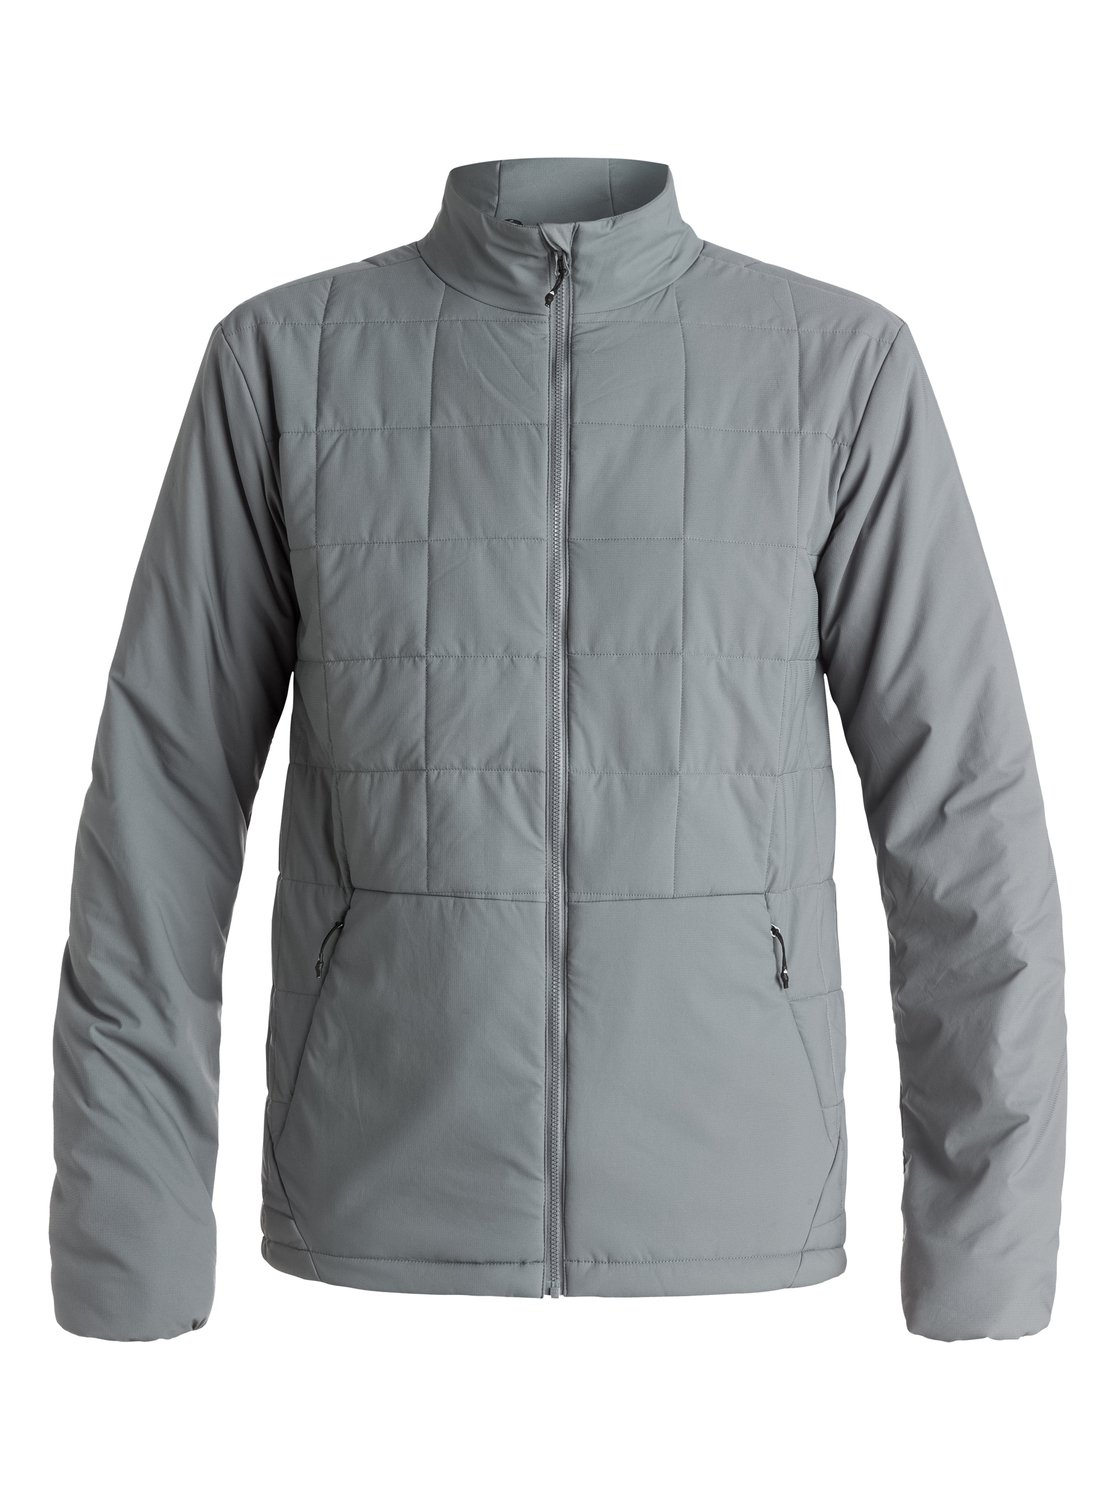 Cirrus Куртка с утеплителем Primaloft®The Cirrus Primaloft® insulator jacket for men features Toray® stretch nylon ripstop for durability and PrimaLoft® Silver hi-loft Compressible high loft insulation, for absolute insurance in all conditions, bulk-free warmth and breathable water-resistant insulation.<br>